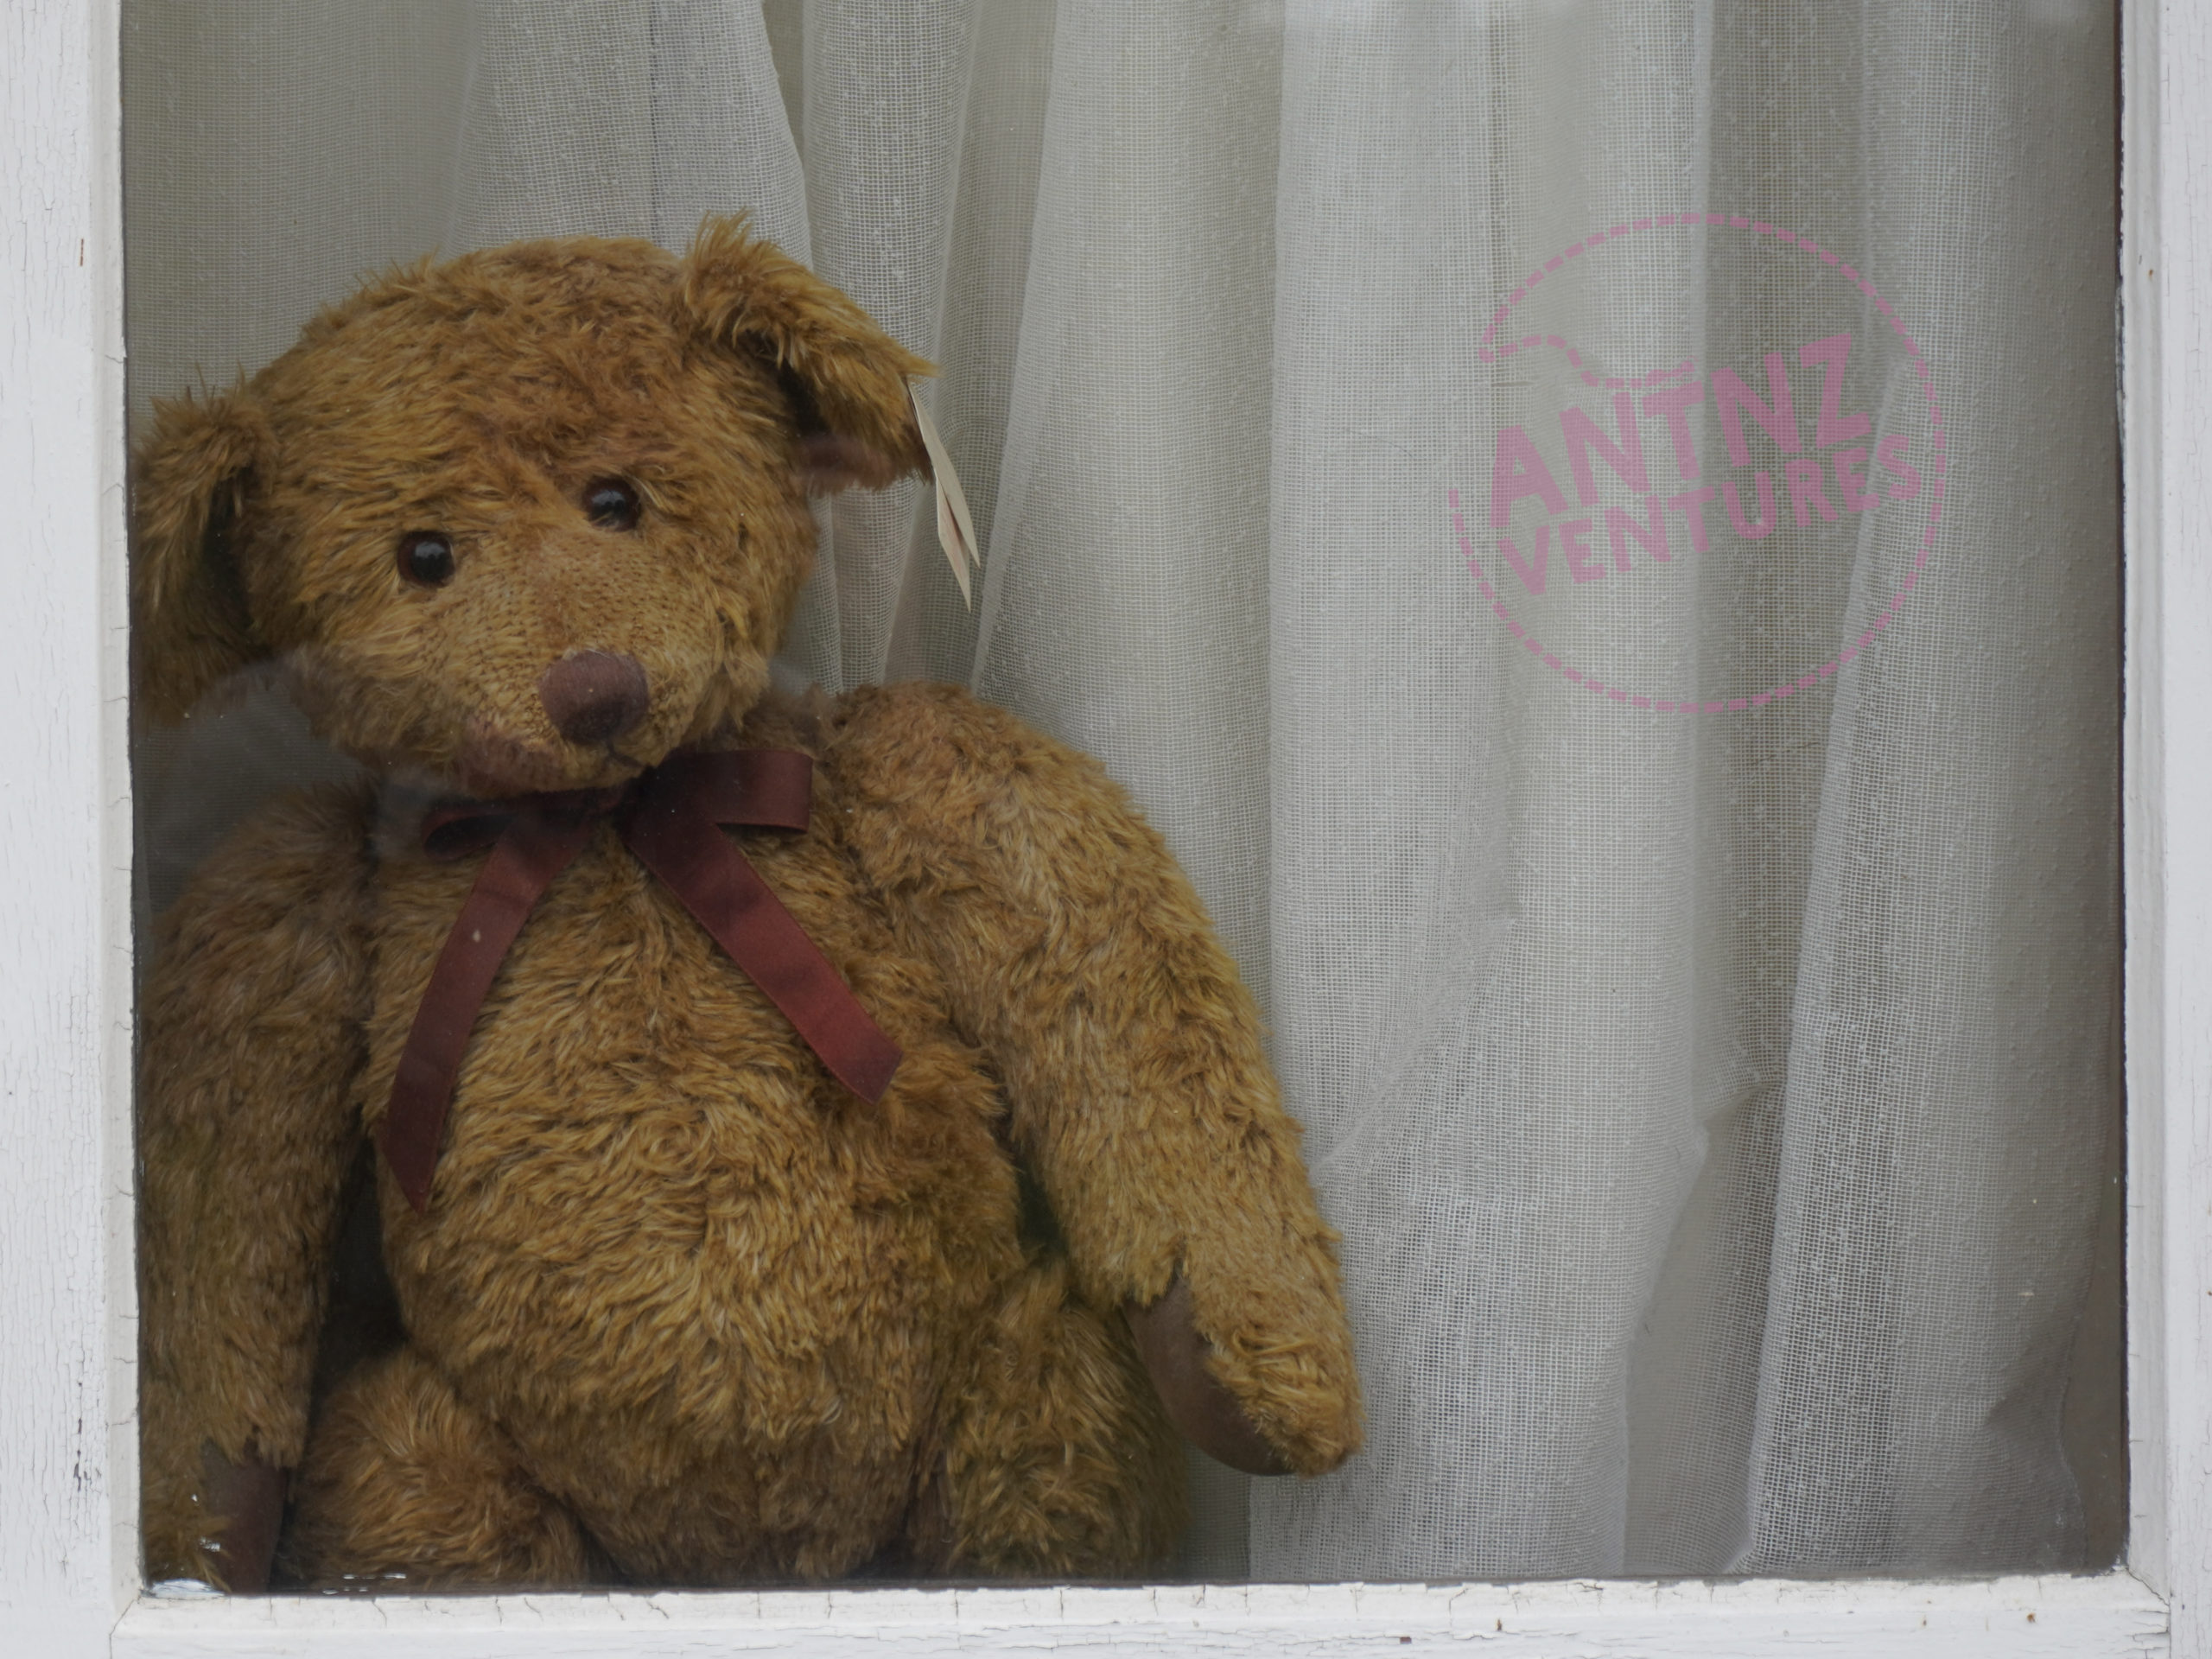 A brown teddy bear with dark brown ribbon. This is more traditional styled teddy bear.